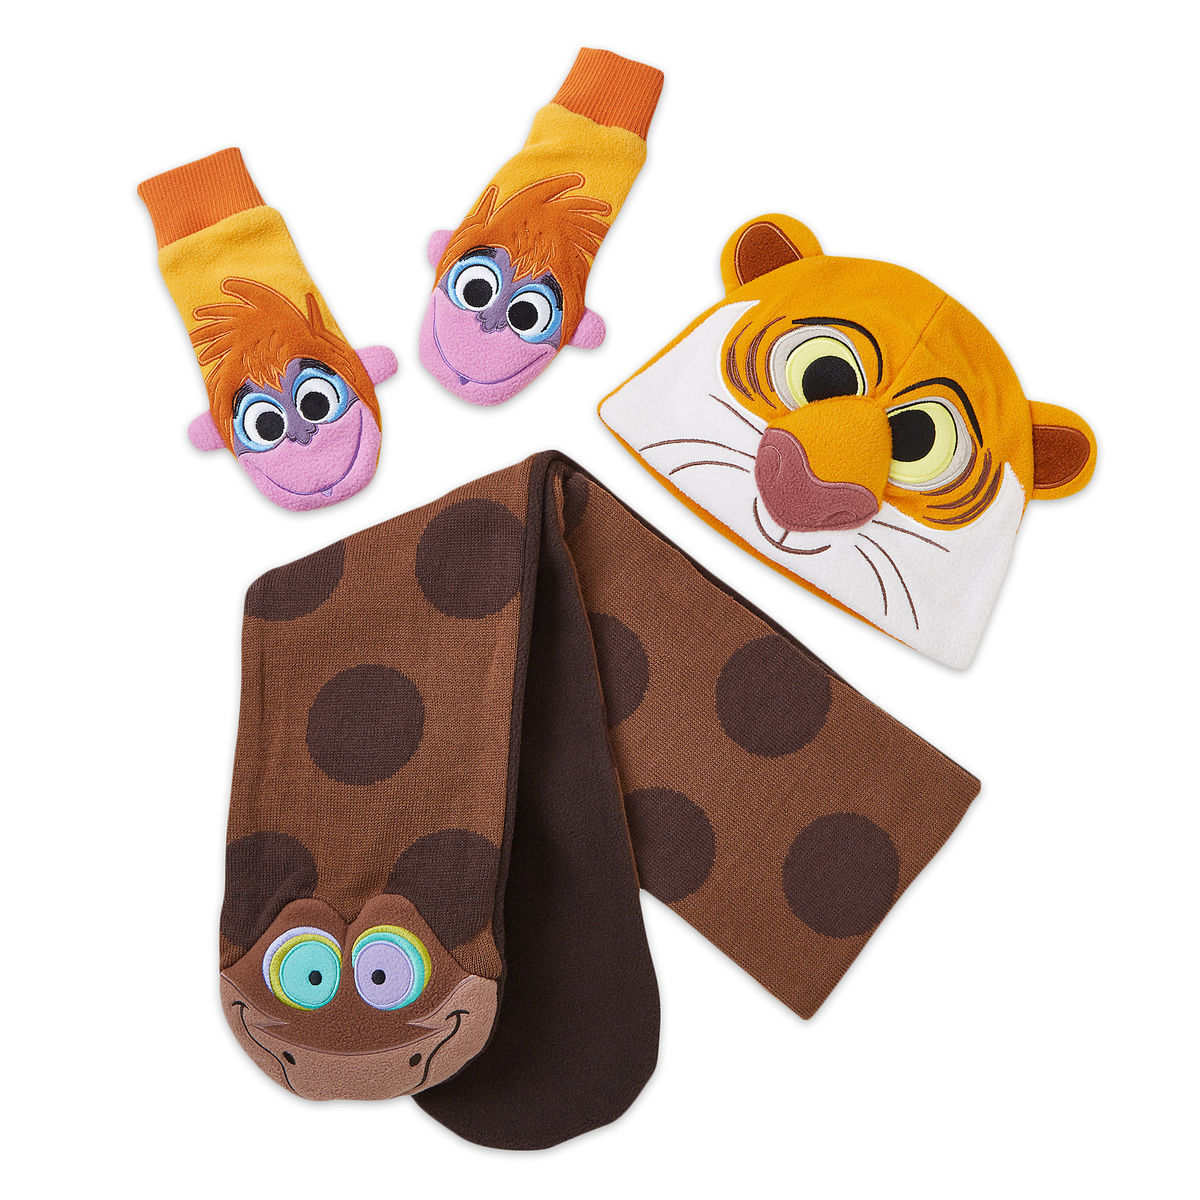 Product Image of The Jungle Book Warmwear Accessories Set - Disney Furrytale friends # 1